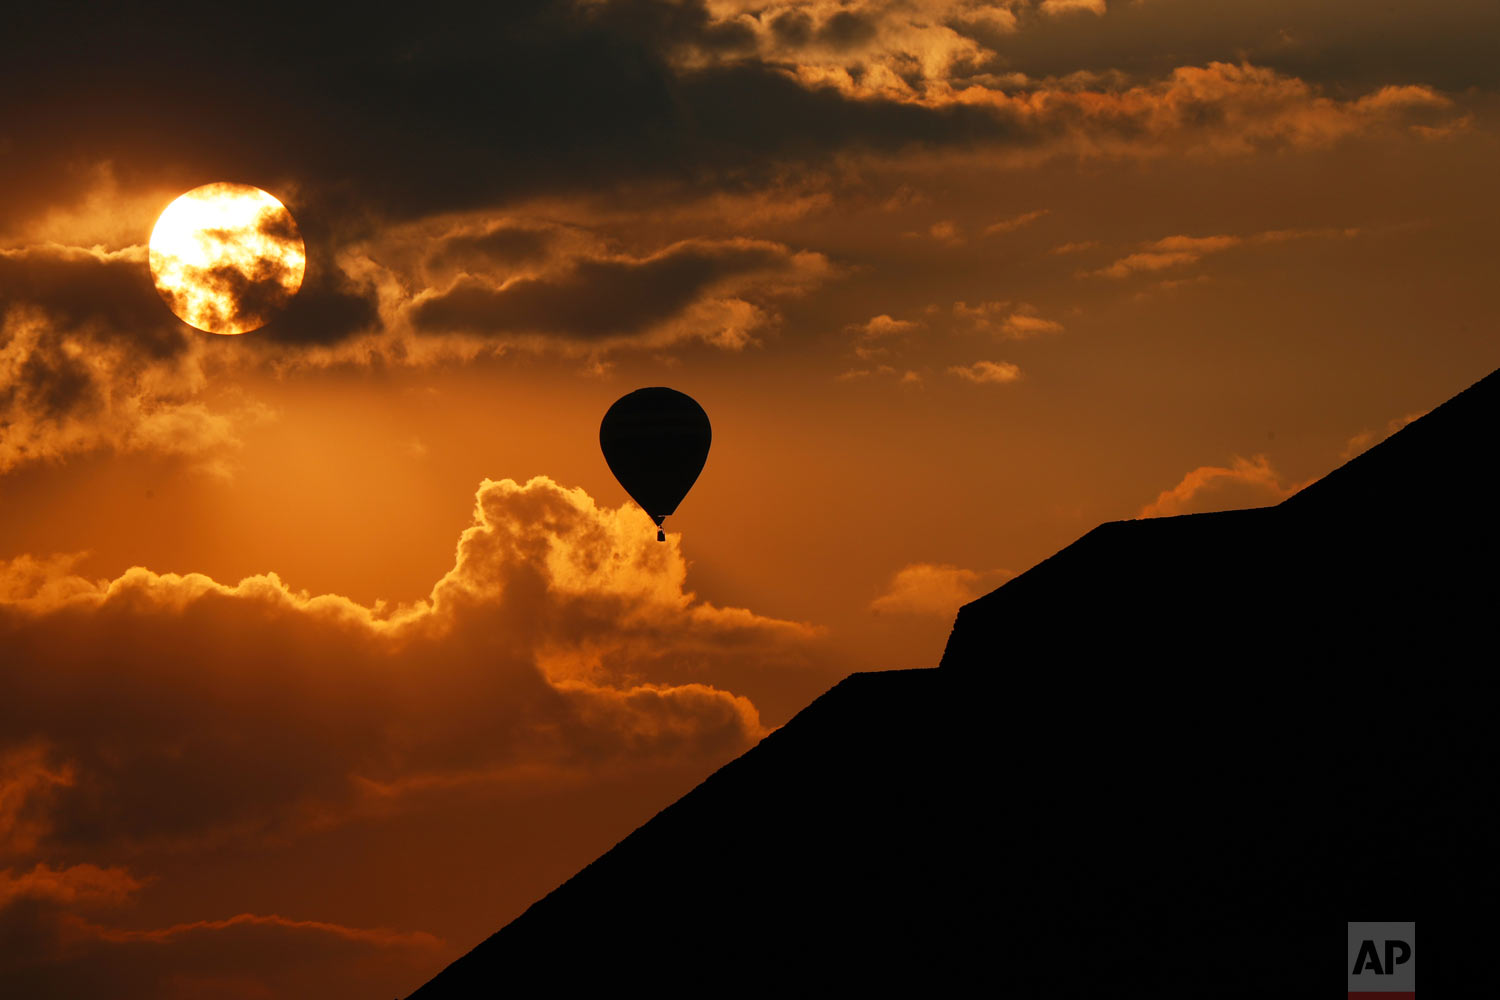 In this March 21, 2019 photo, a balloon flies near the Pyramid of the Sun in Teotihuacan, Mexico, on the Spring equinox. (AP Photo/Marco Ugarte)